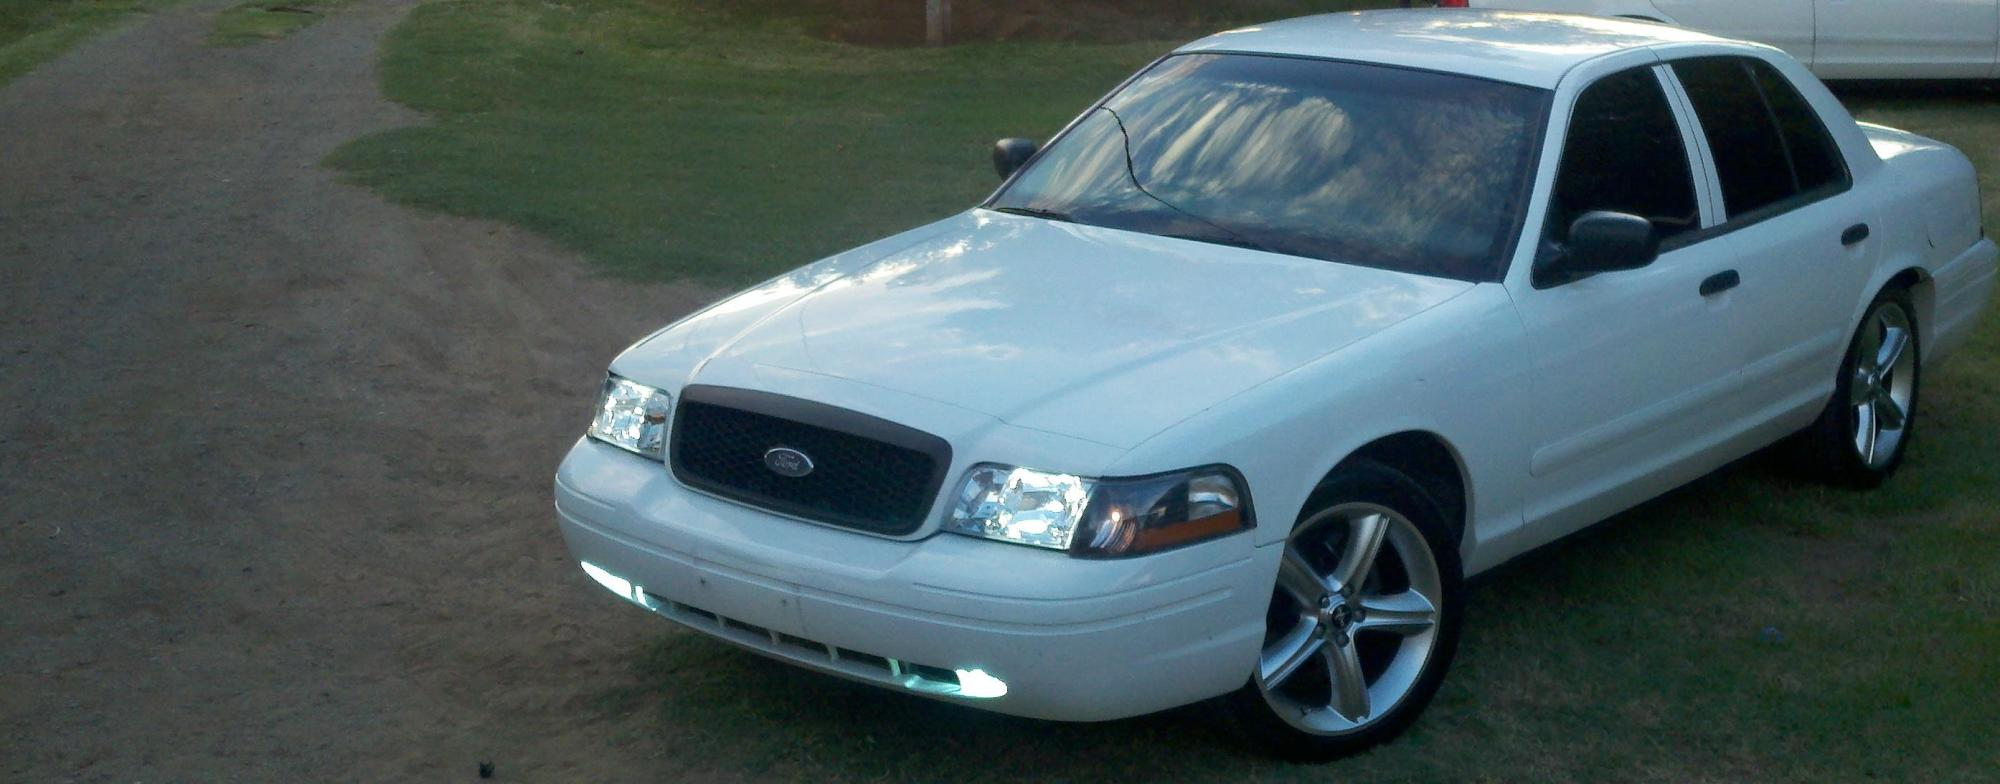 hight resolution of elcrownvic 2001 ford crown victoria